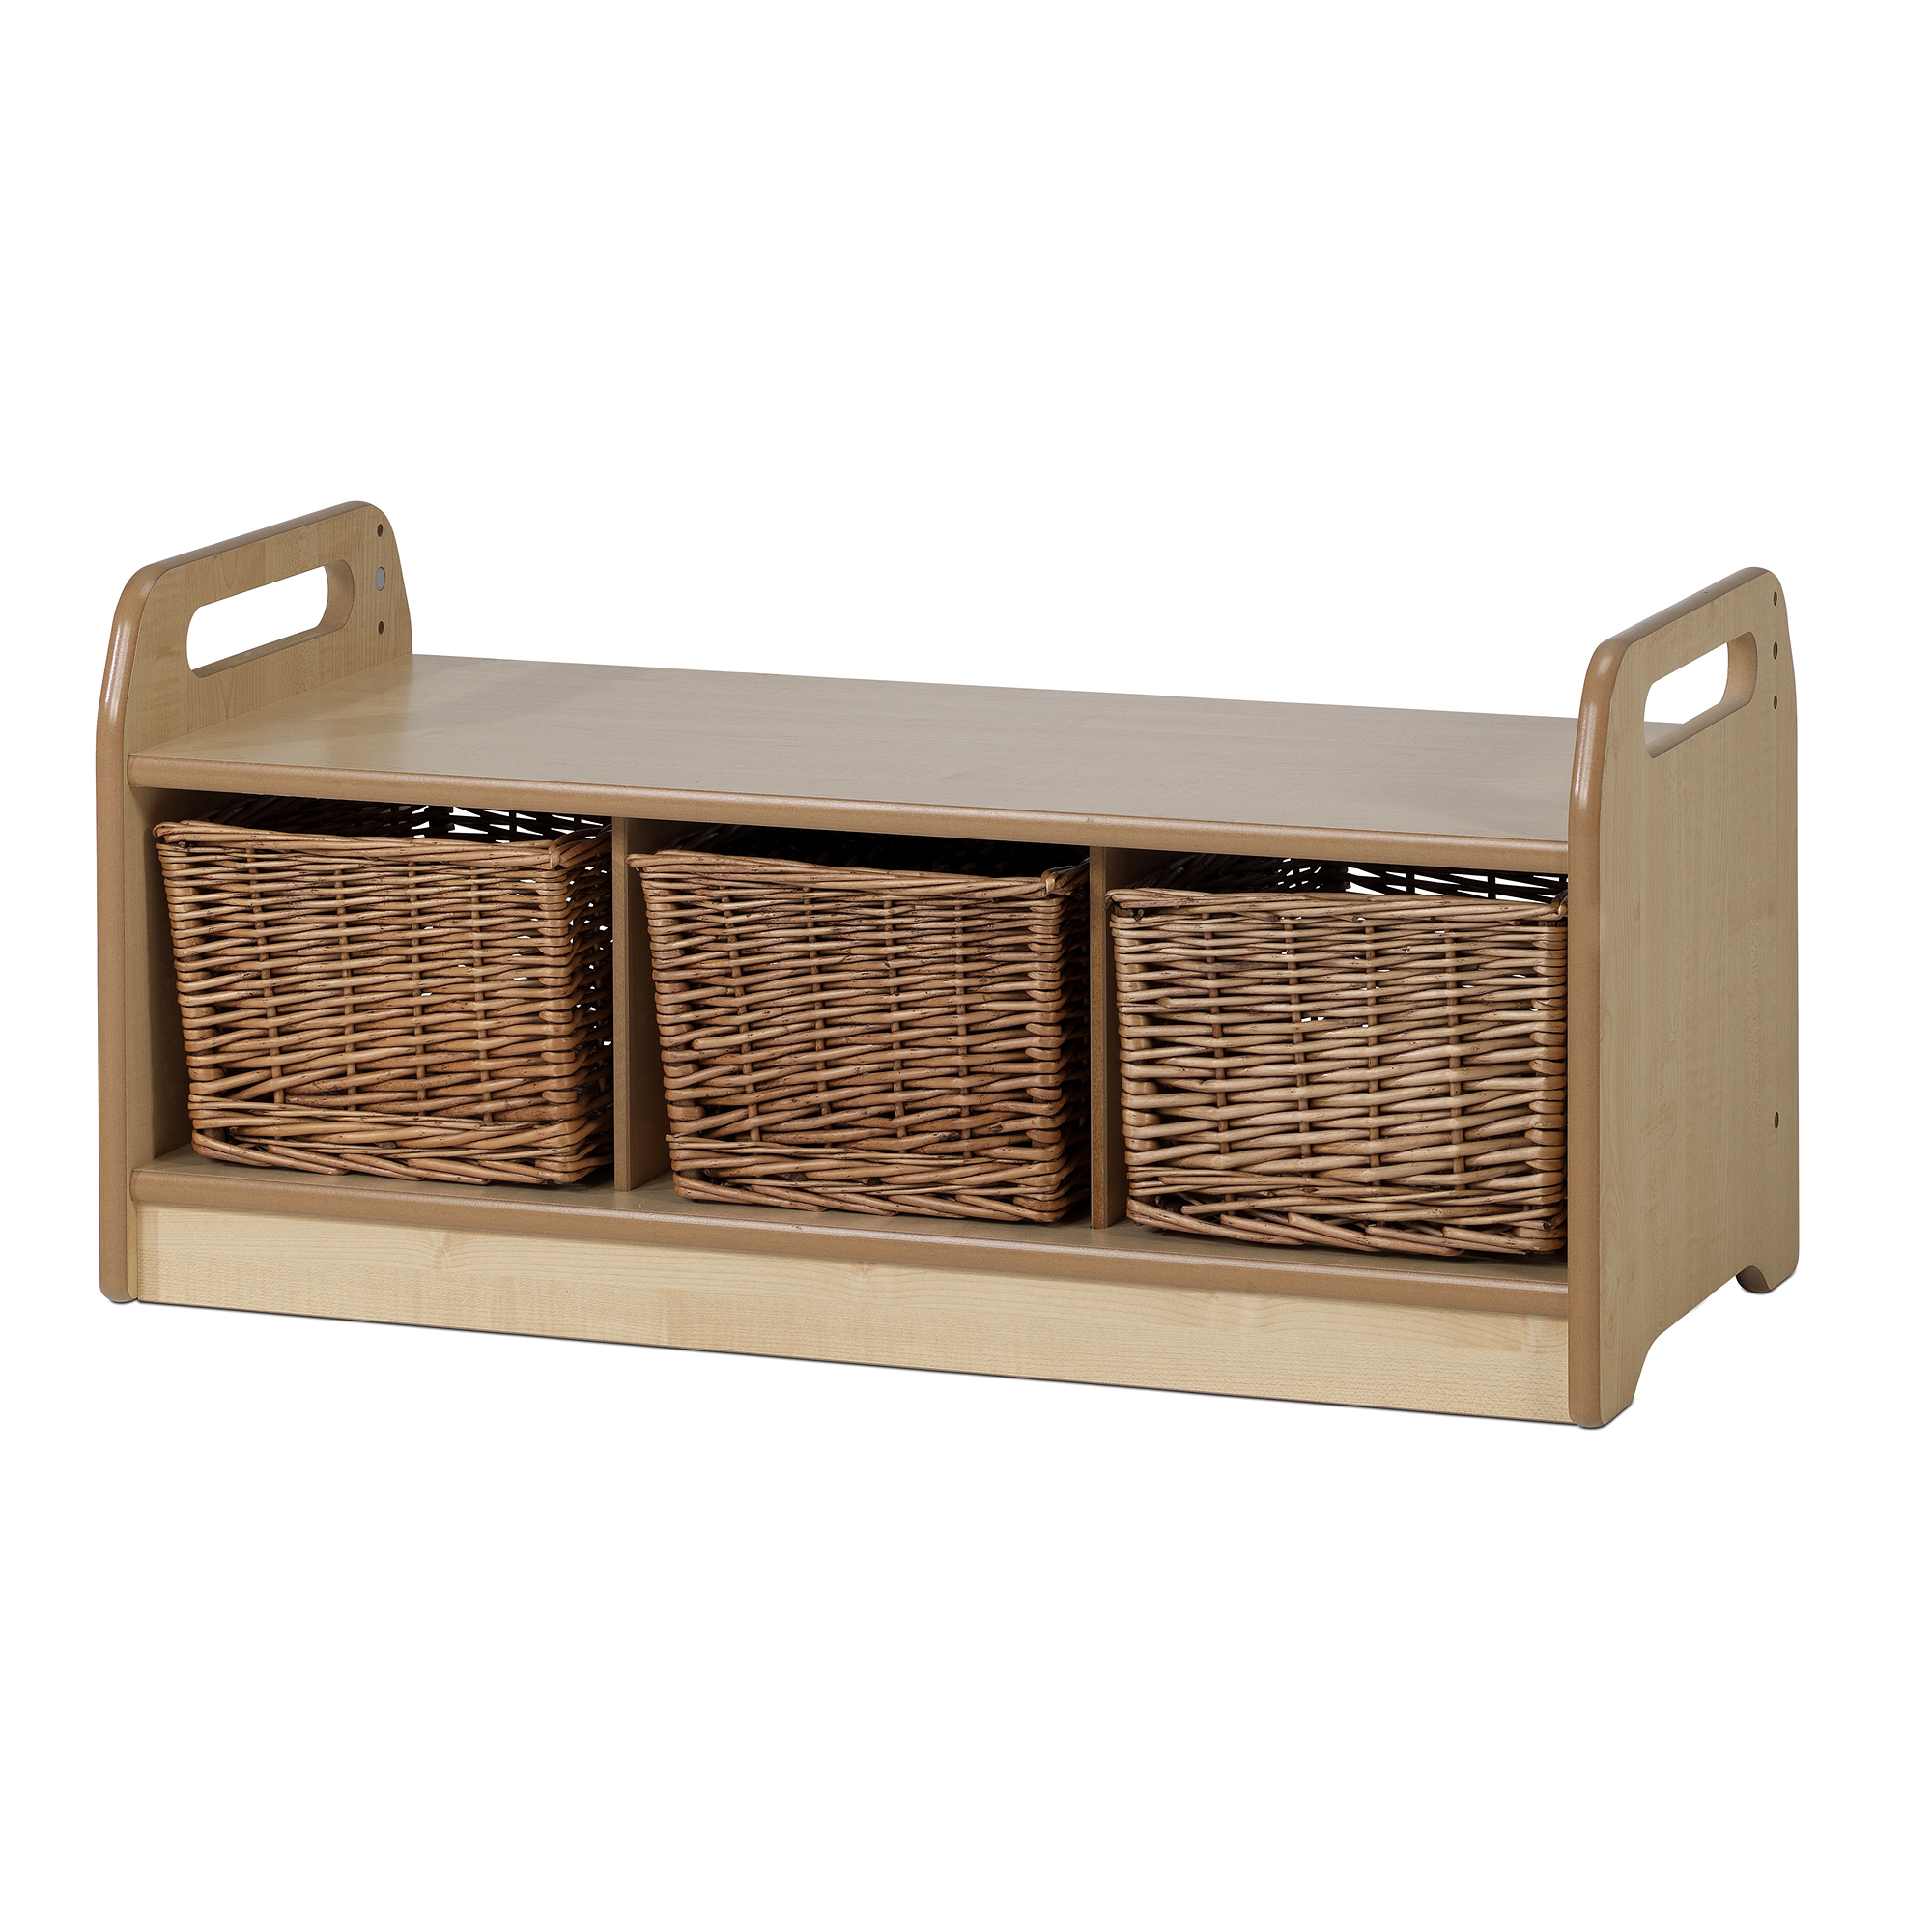 Remarkable Low Level Storage Bench 3 Wicker Baskets Camellatalisay Diy Chair Ideas Camellatalisaycom